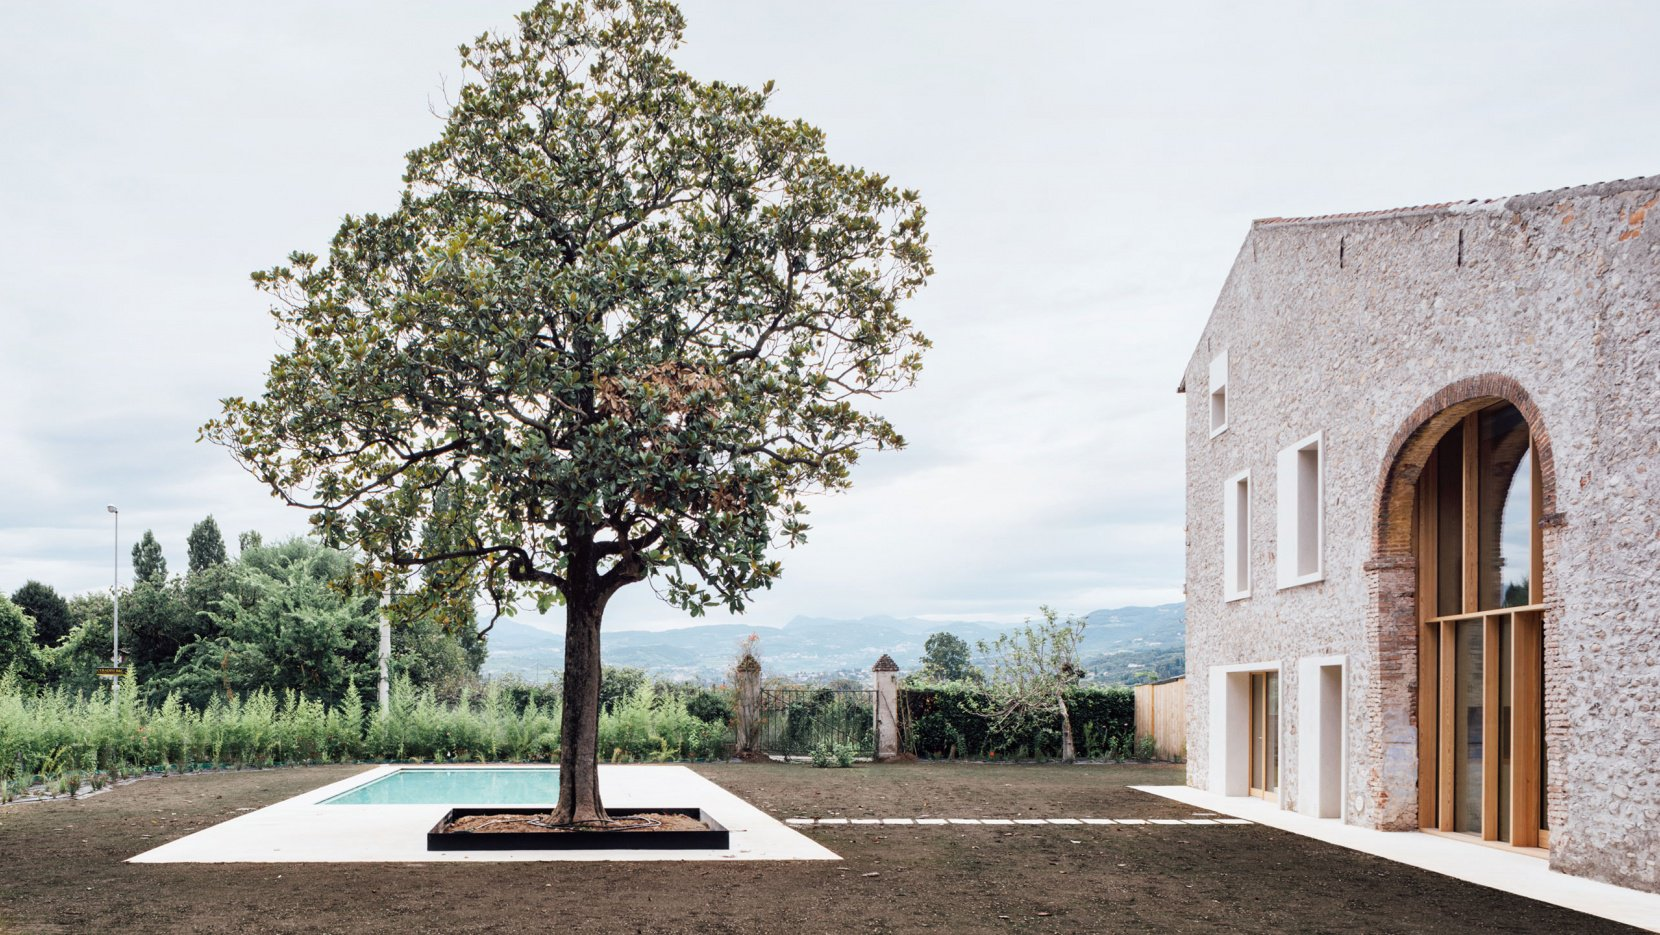 This contemporary family home is a converted stone barn in Italy, and it shows many sustainable features